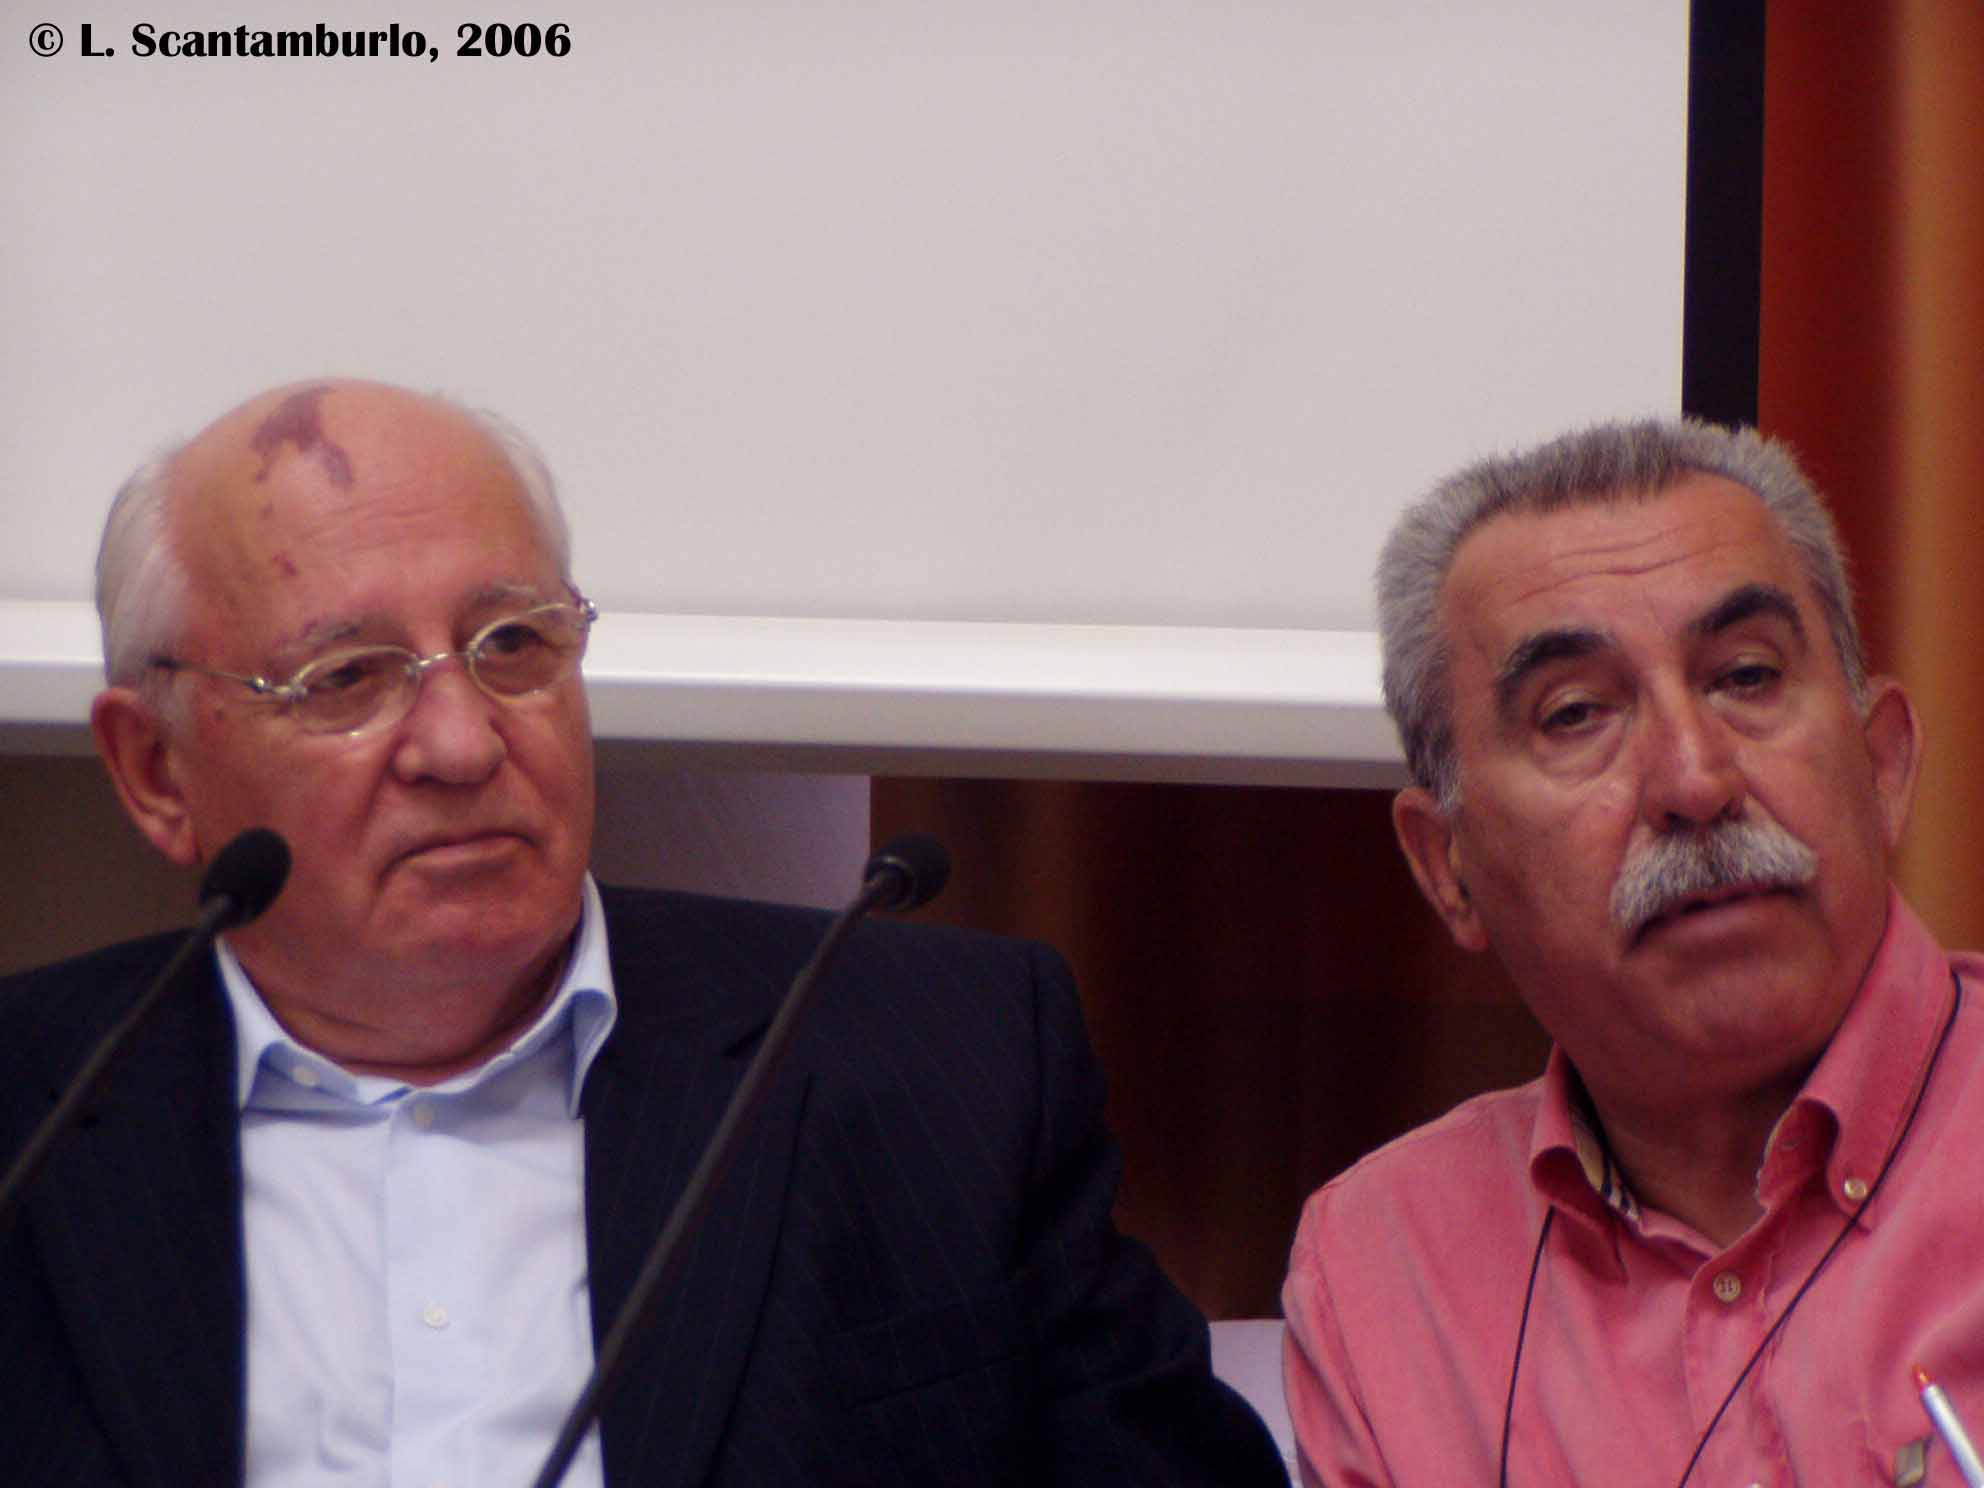 M.S. Gorbachev and G. Chiesa - Press conference, June 2006, San Servolo Island